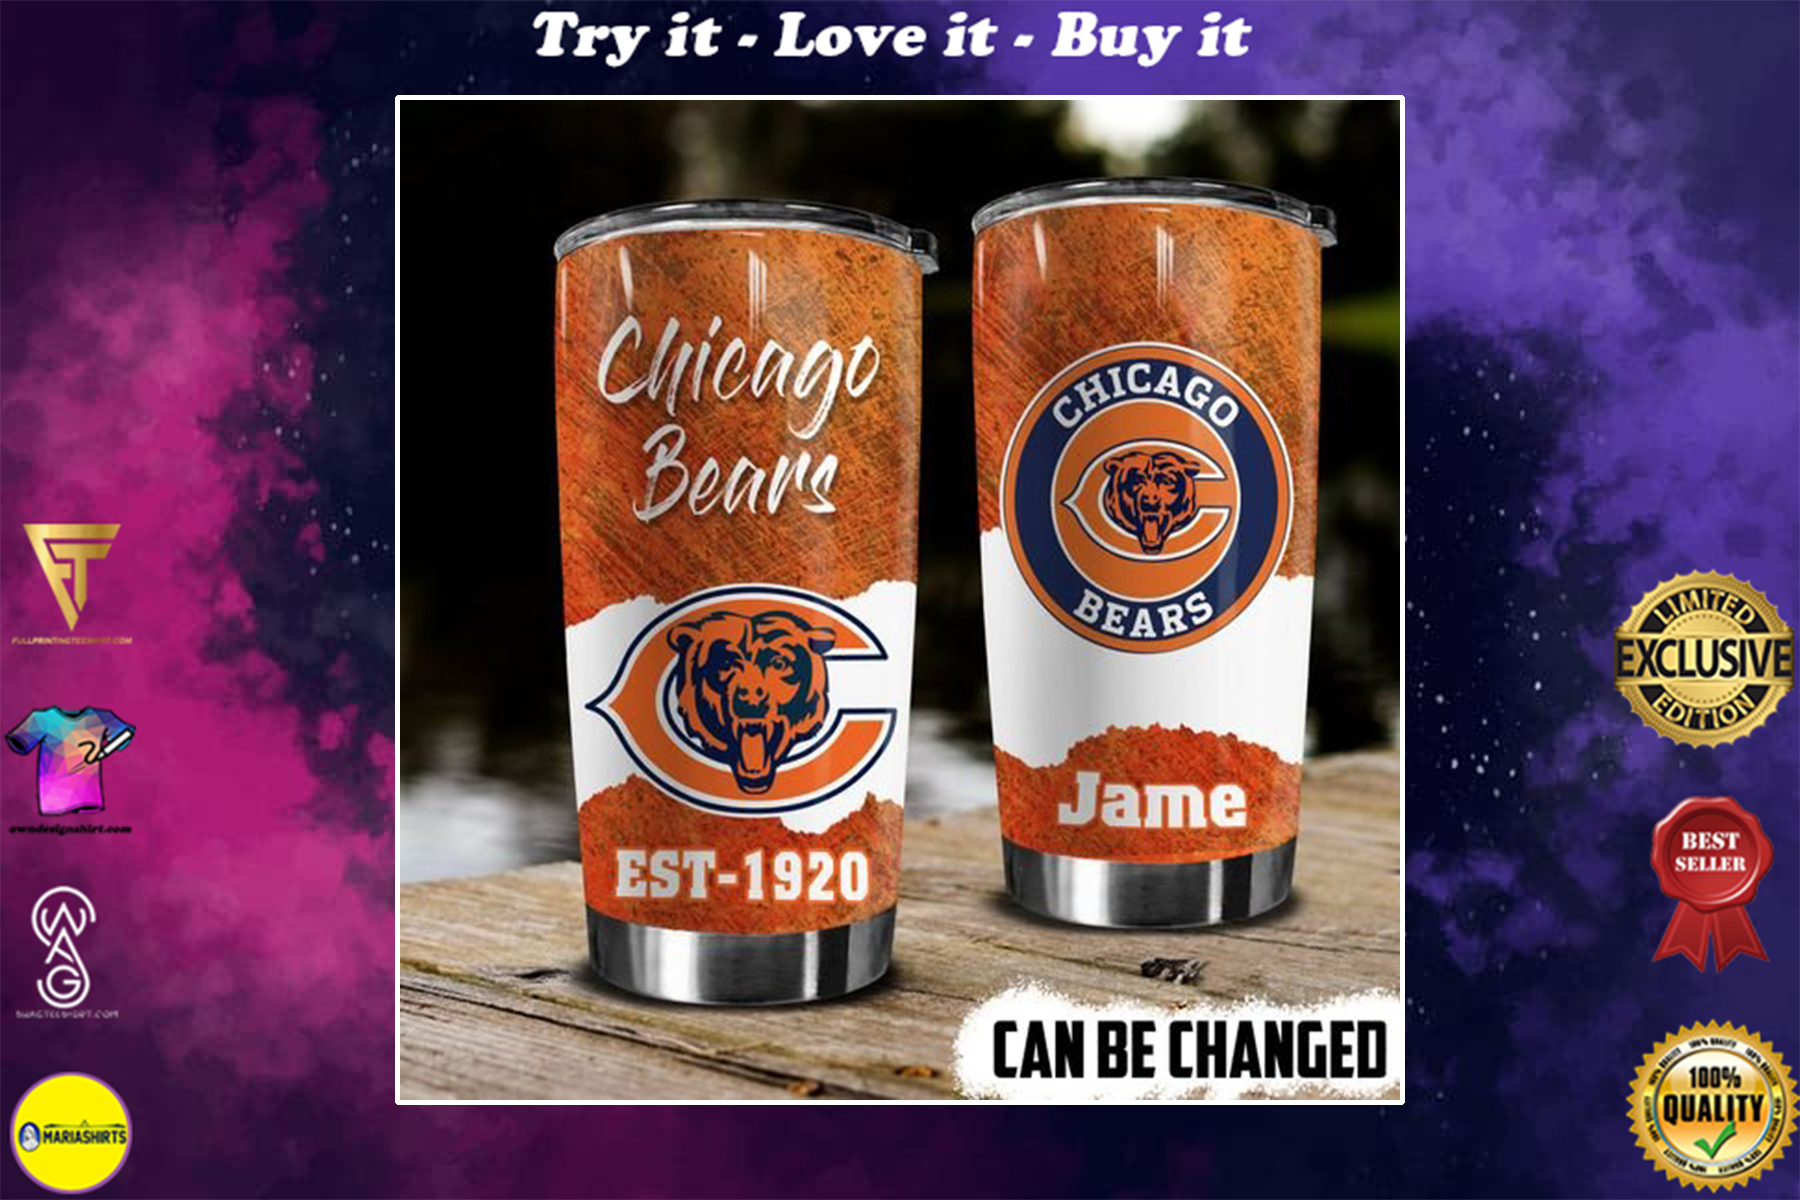 personalized name chicago bears american football team tumbler